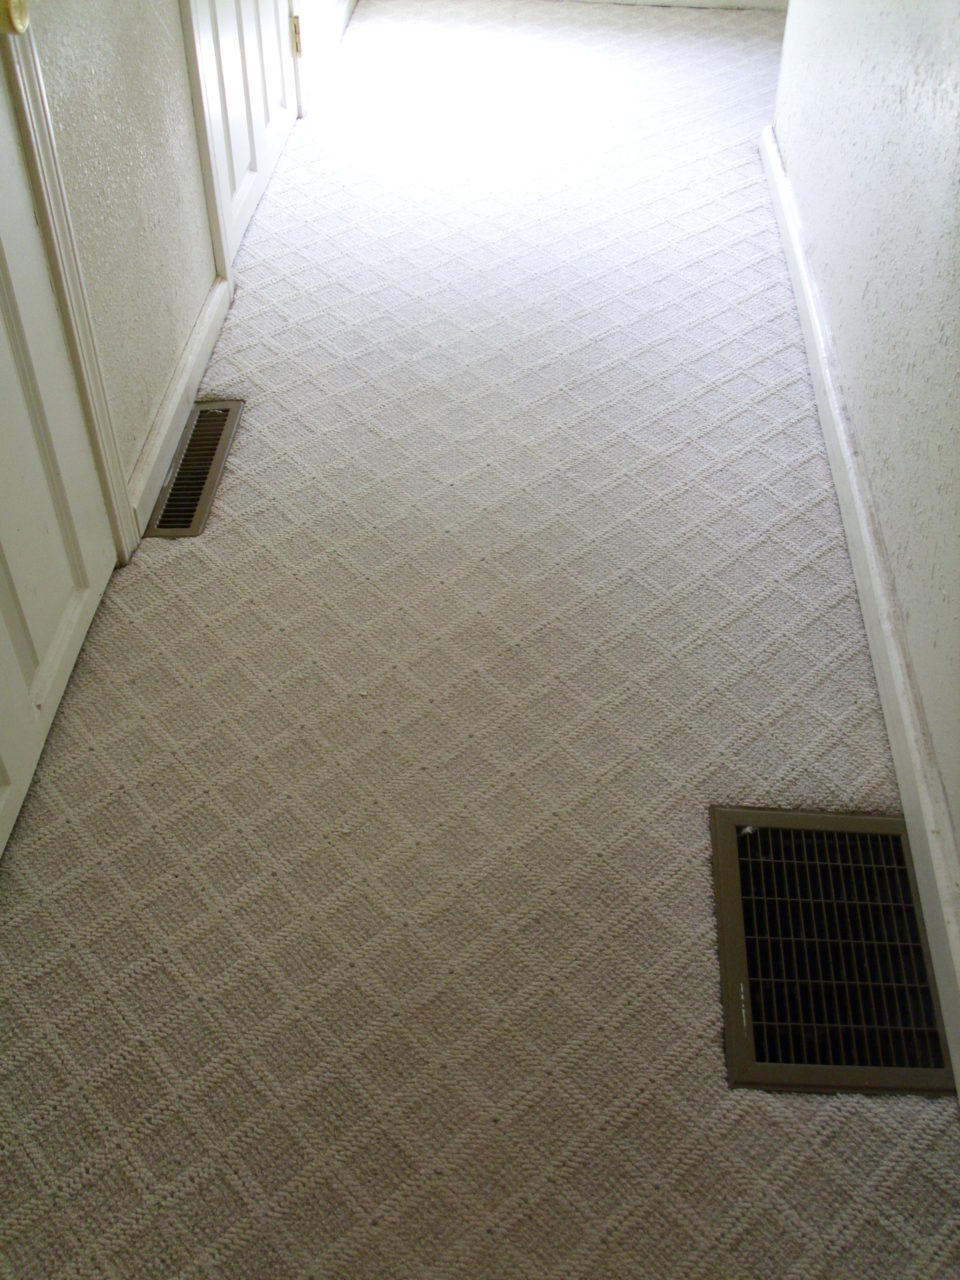 Same hallway after Heaven's Best Carpet Cleaning